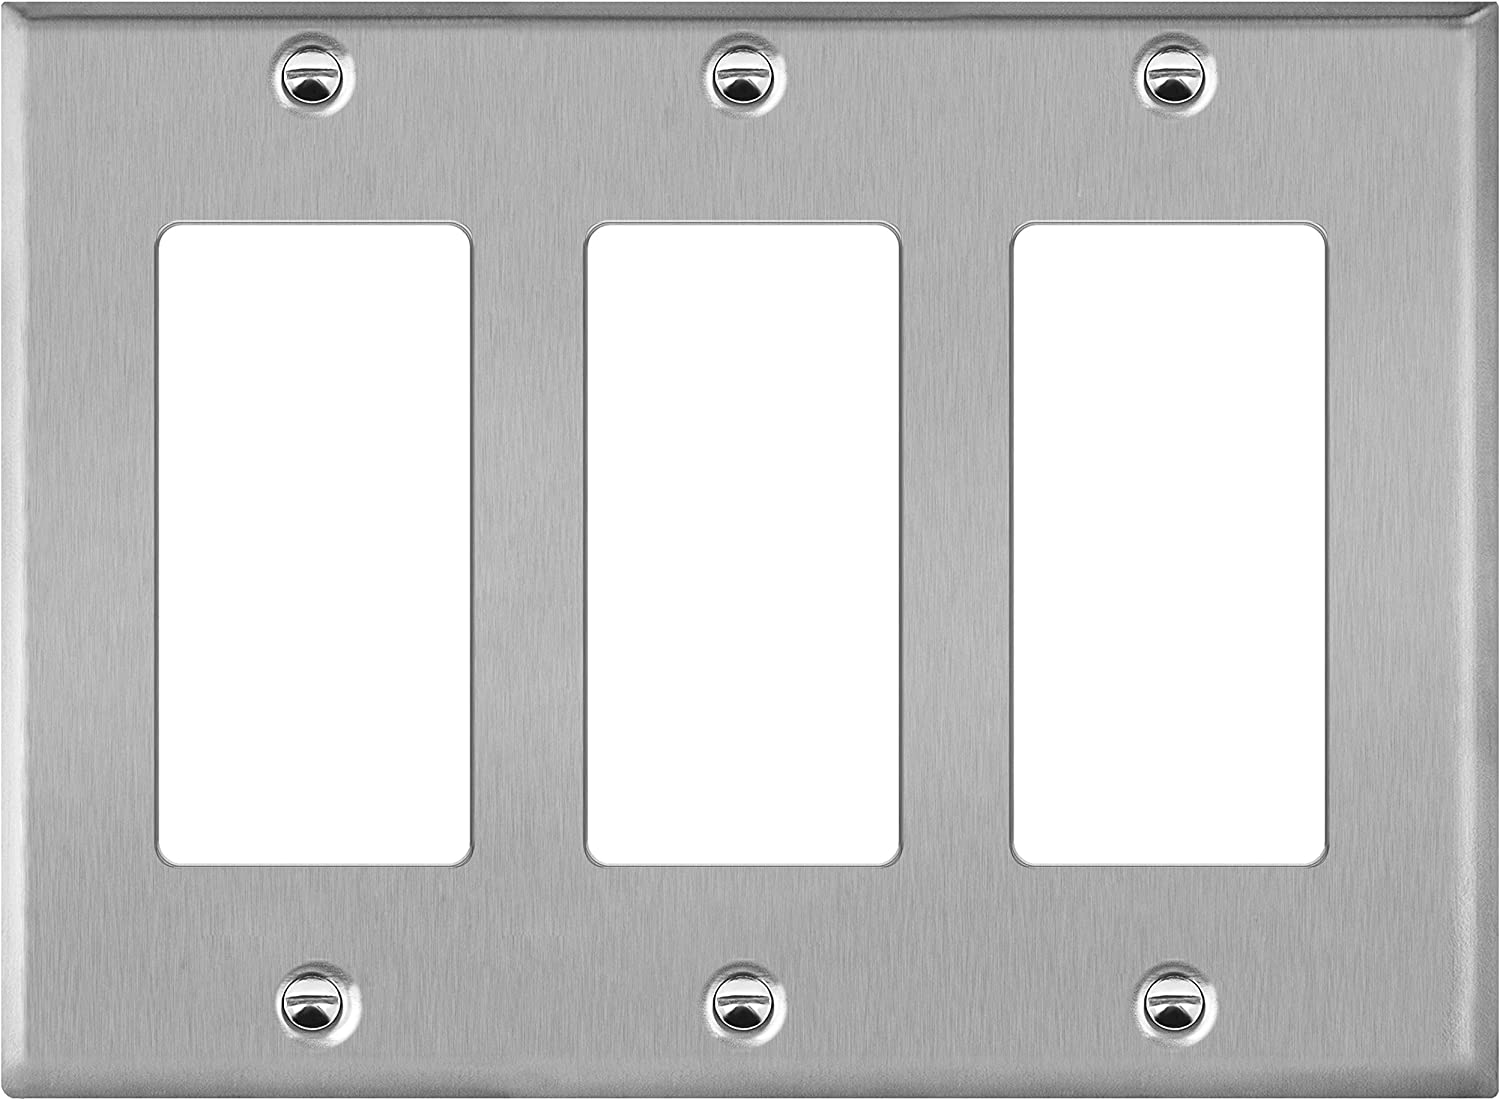 "ENERLITES Decorator Switch or Outlet Metal Wall Plate, Corrosion Resistant, Size 3-Gang 4.50"" x 6.38"", UL Listed, 7733, 430 Stainless Steel, Silver"